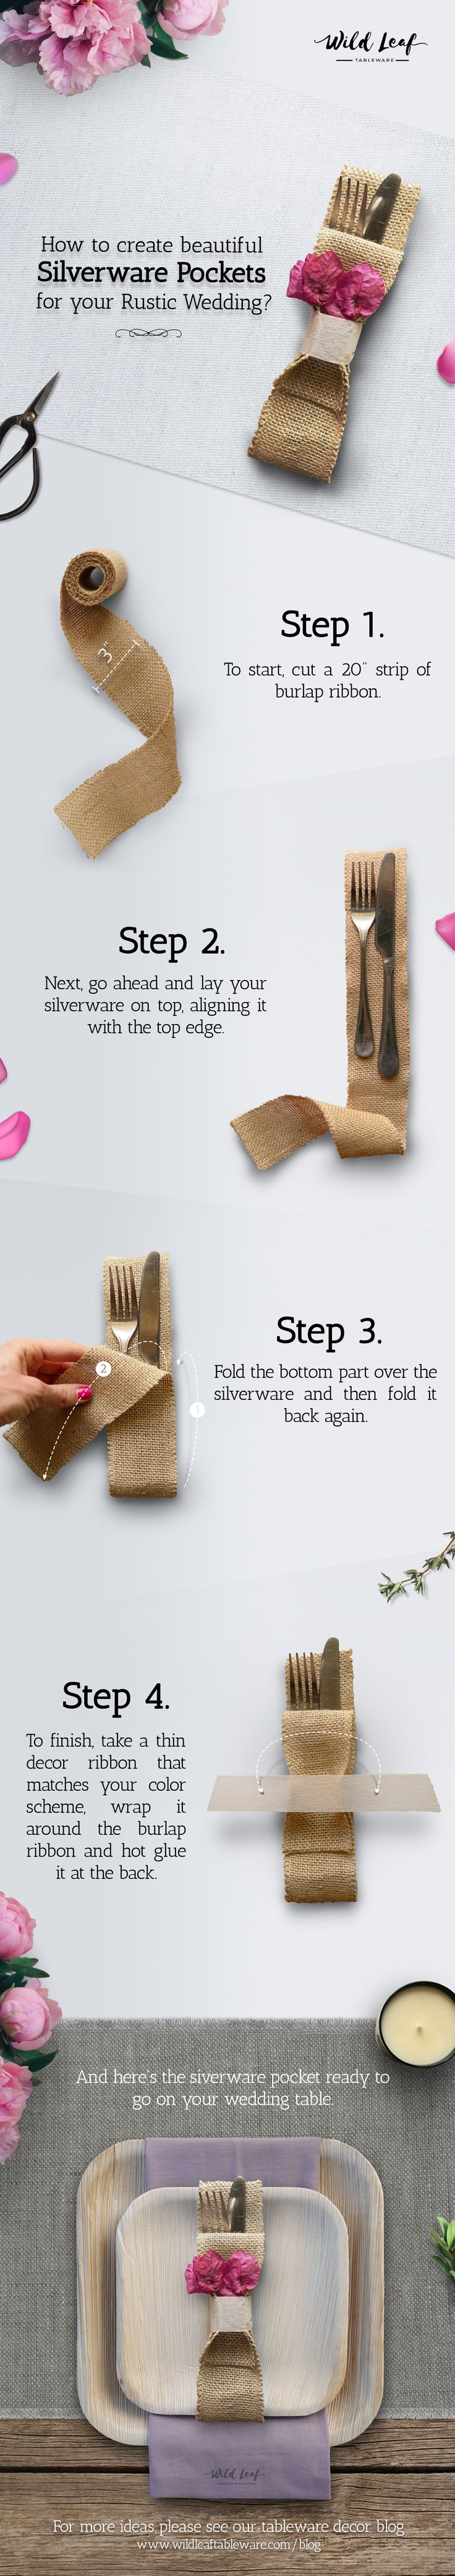 DIY: Burlap Silverware Pockets for your rustic themed wedding. Cutlery pouches, flatware holders, utensils pockets and palm leaf plates for rustic barn weddings, birthdays or outdoor parties. (Diy Table)